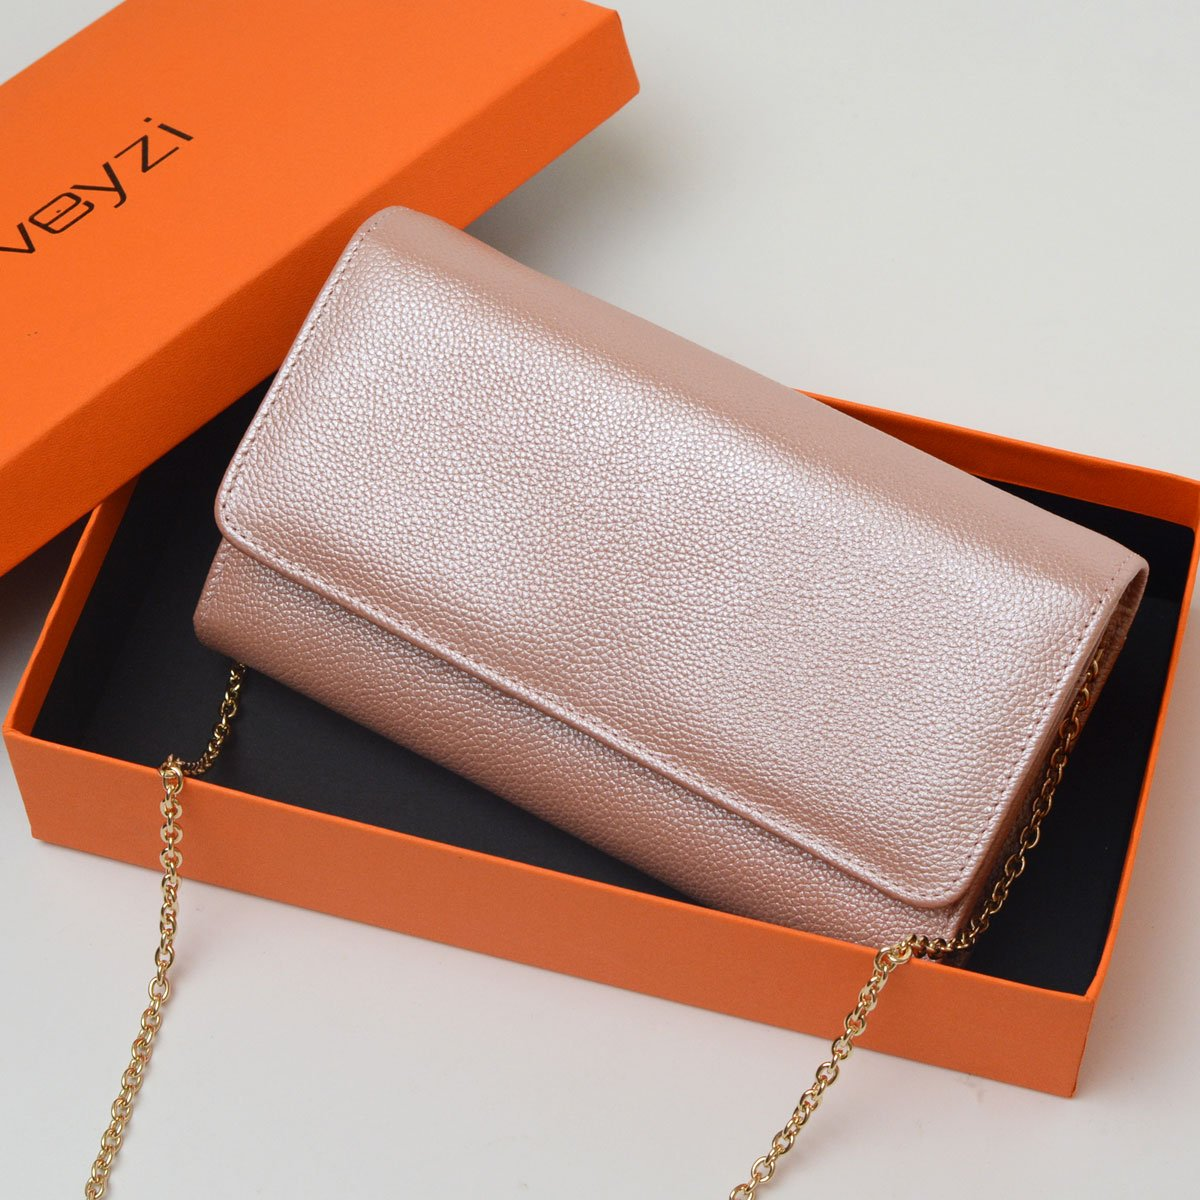 Women RFID Leather Trifold Wallet Cossbody Purse Clutch with Chain Strap (Rose Gold) by Bveyzi (Image #8)